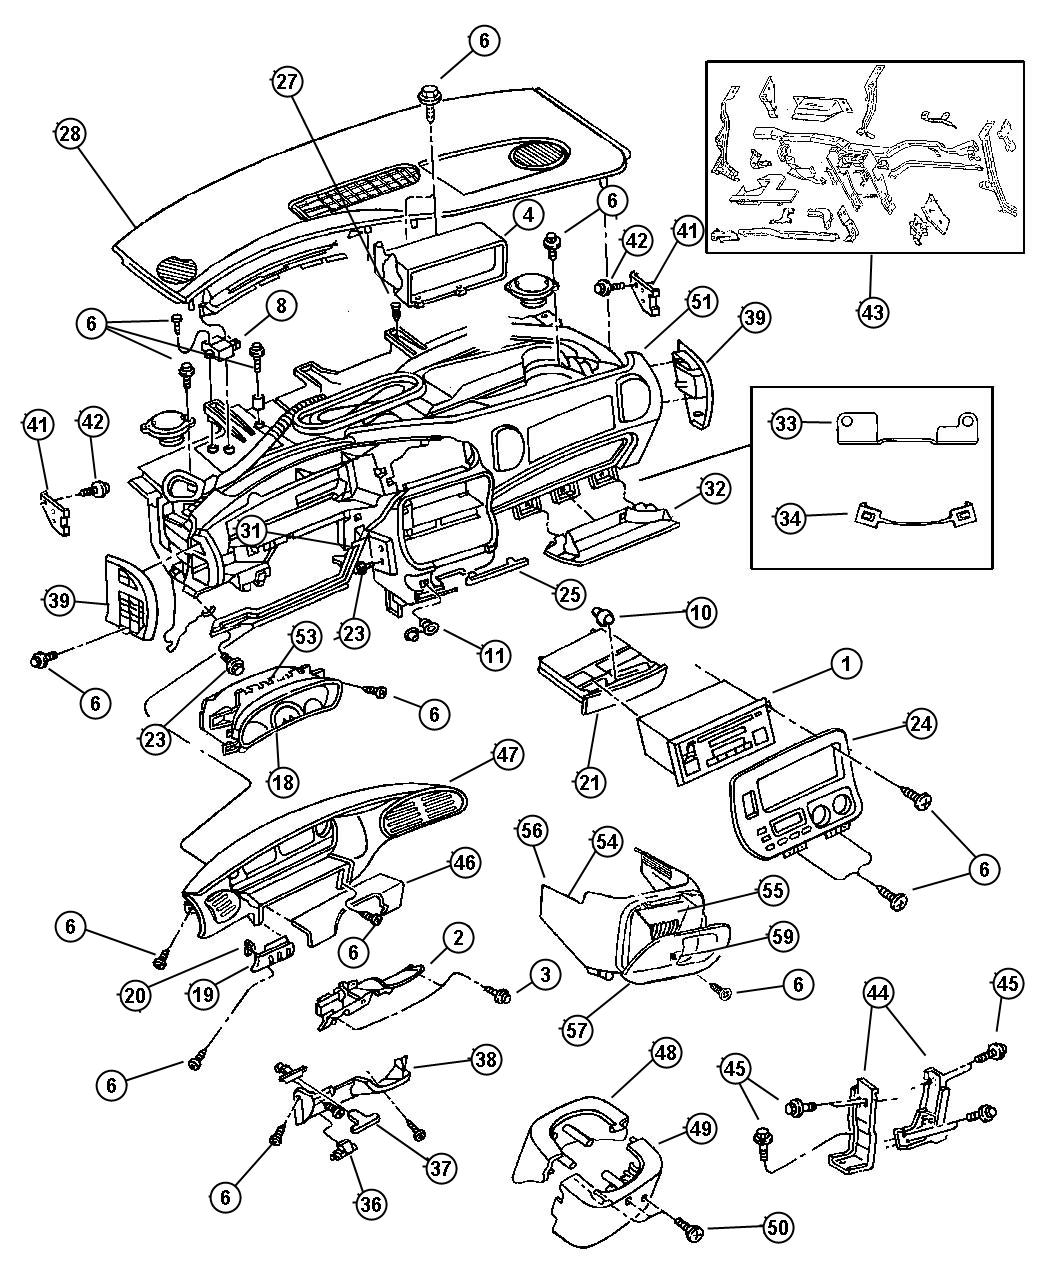 2006 Chrysler 300c Engine Diagram Wiring Library Fuse Box Cover Plymouth Voyager Another Blog About U2022 300